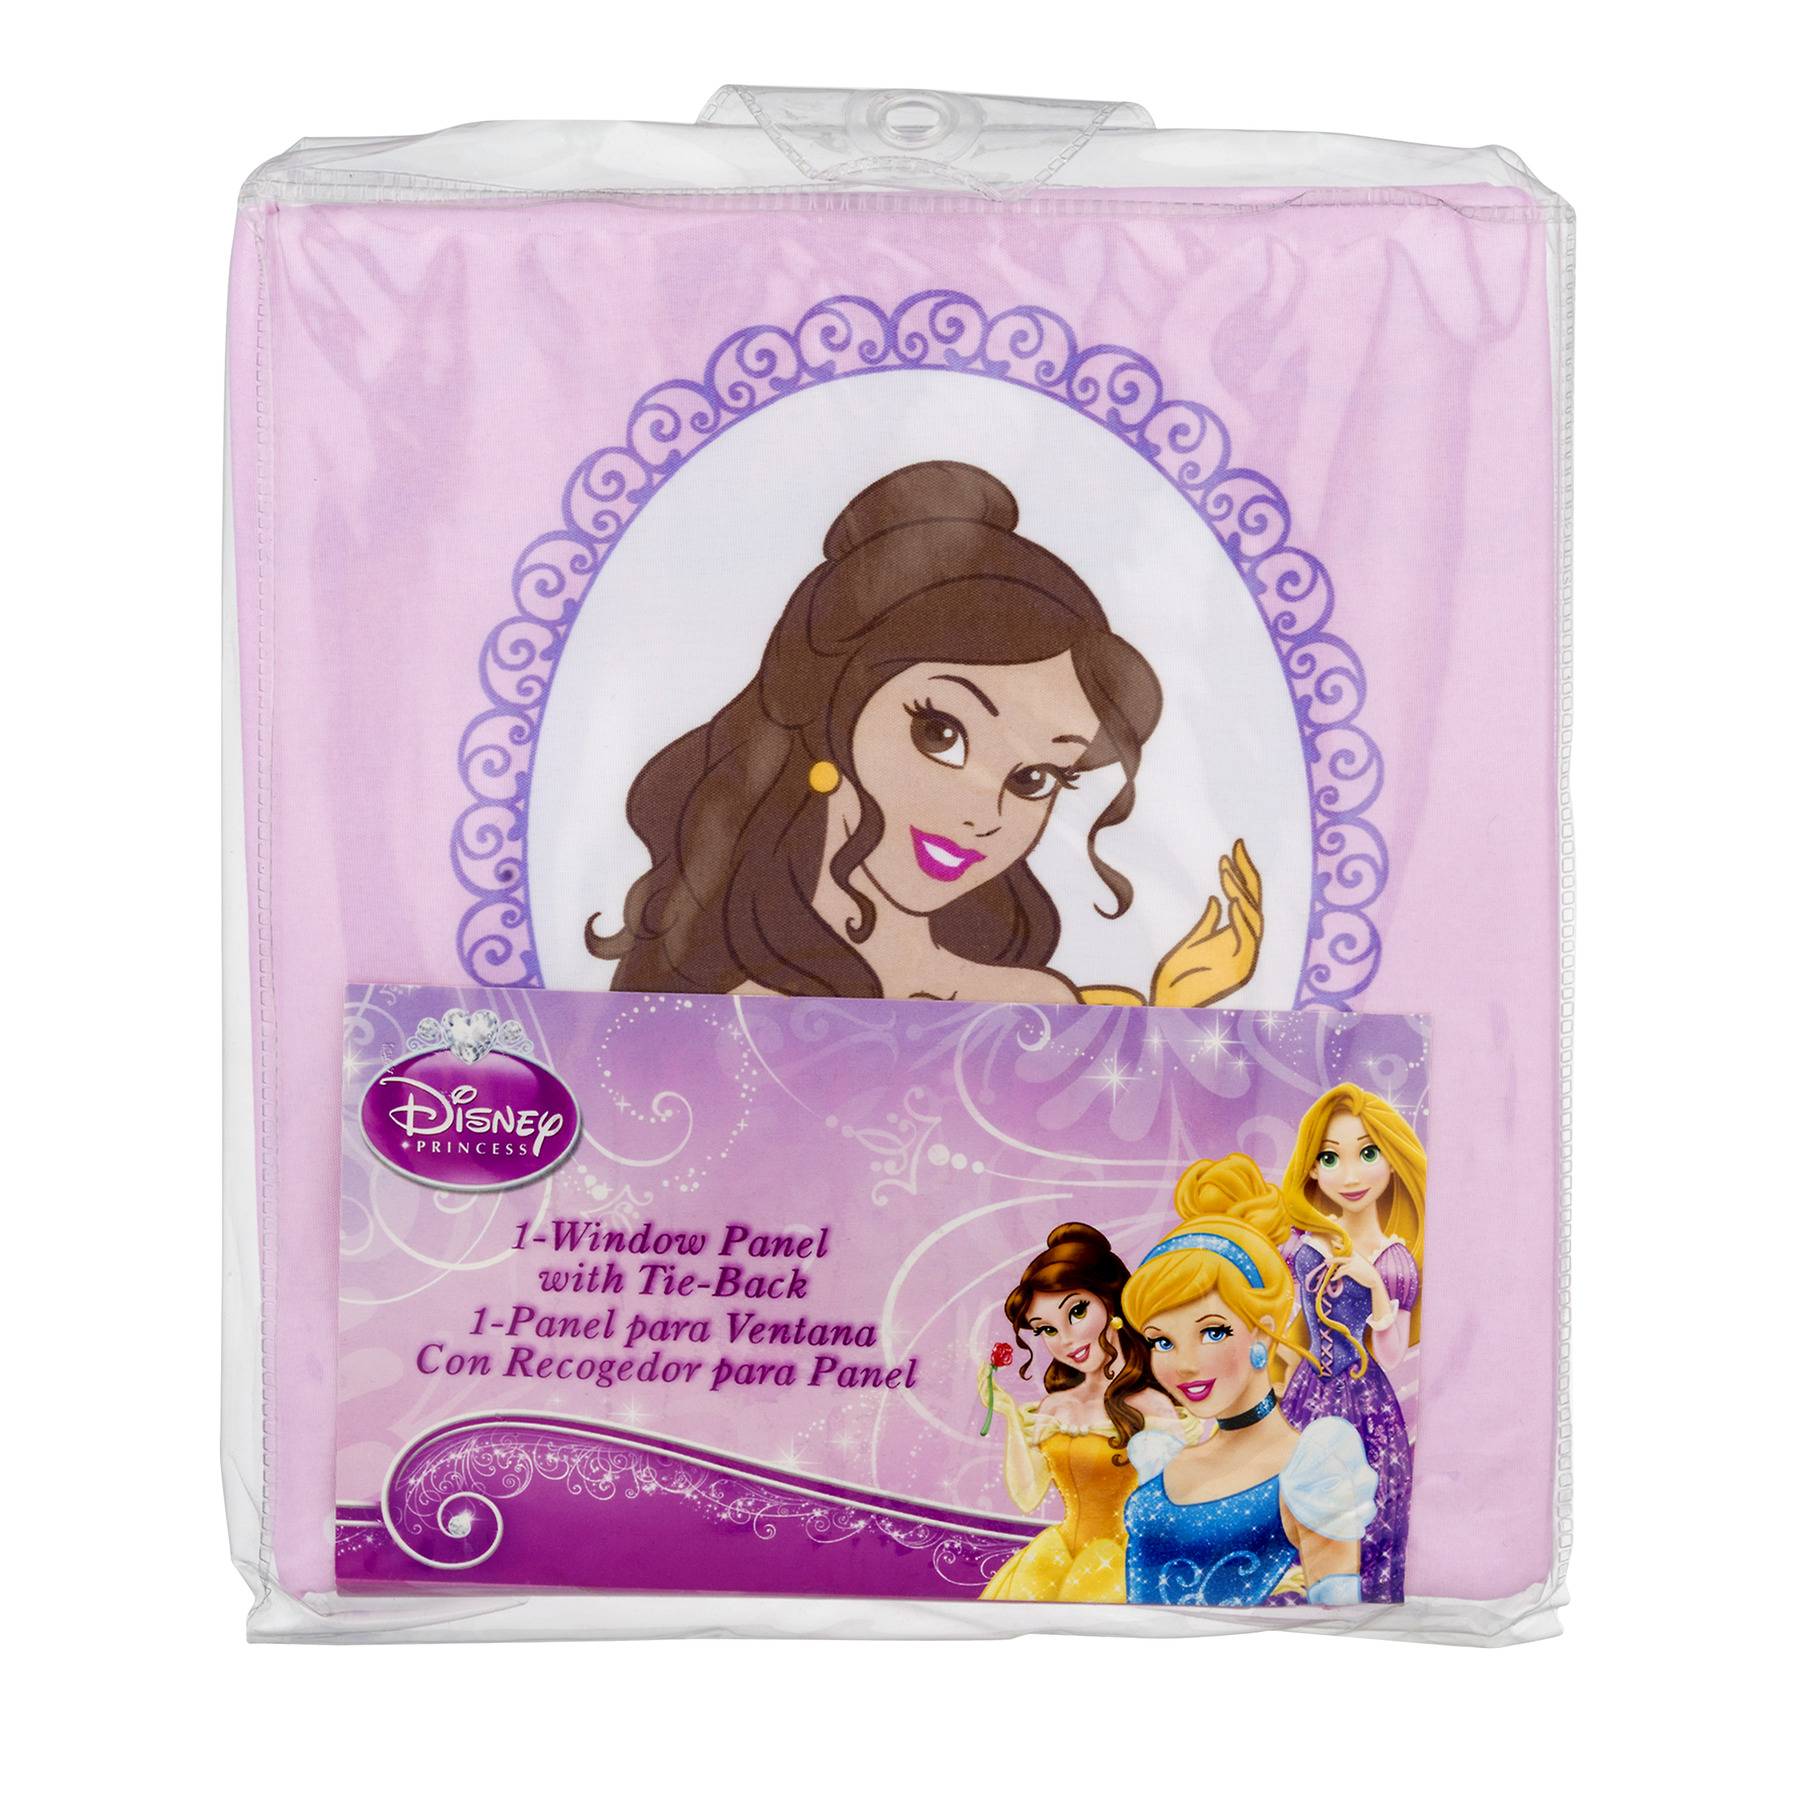 Disney Princess Timeless Elegance Girls Bedroom Curtain Panel